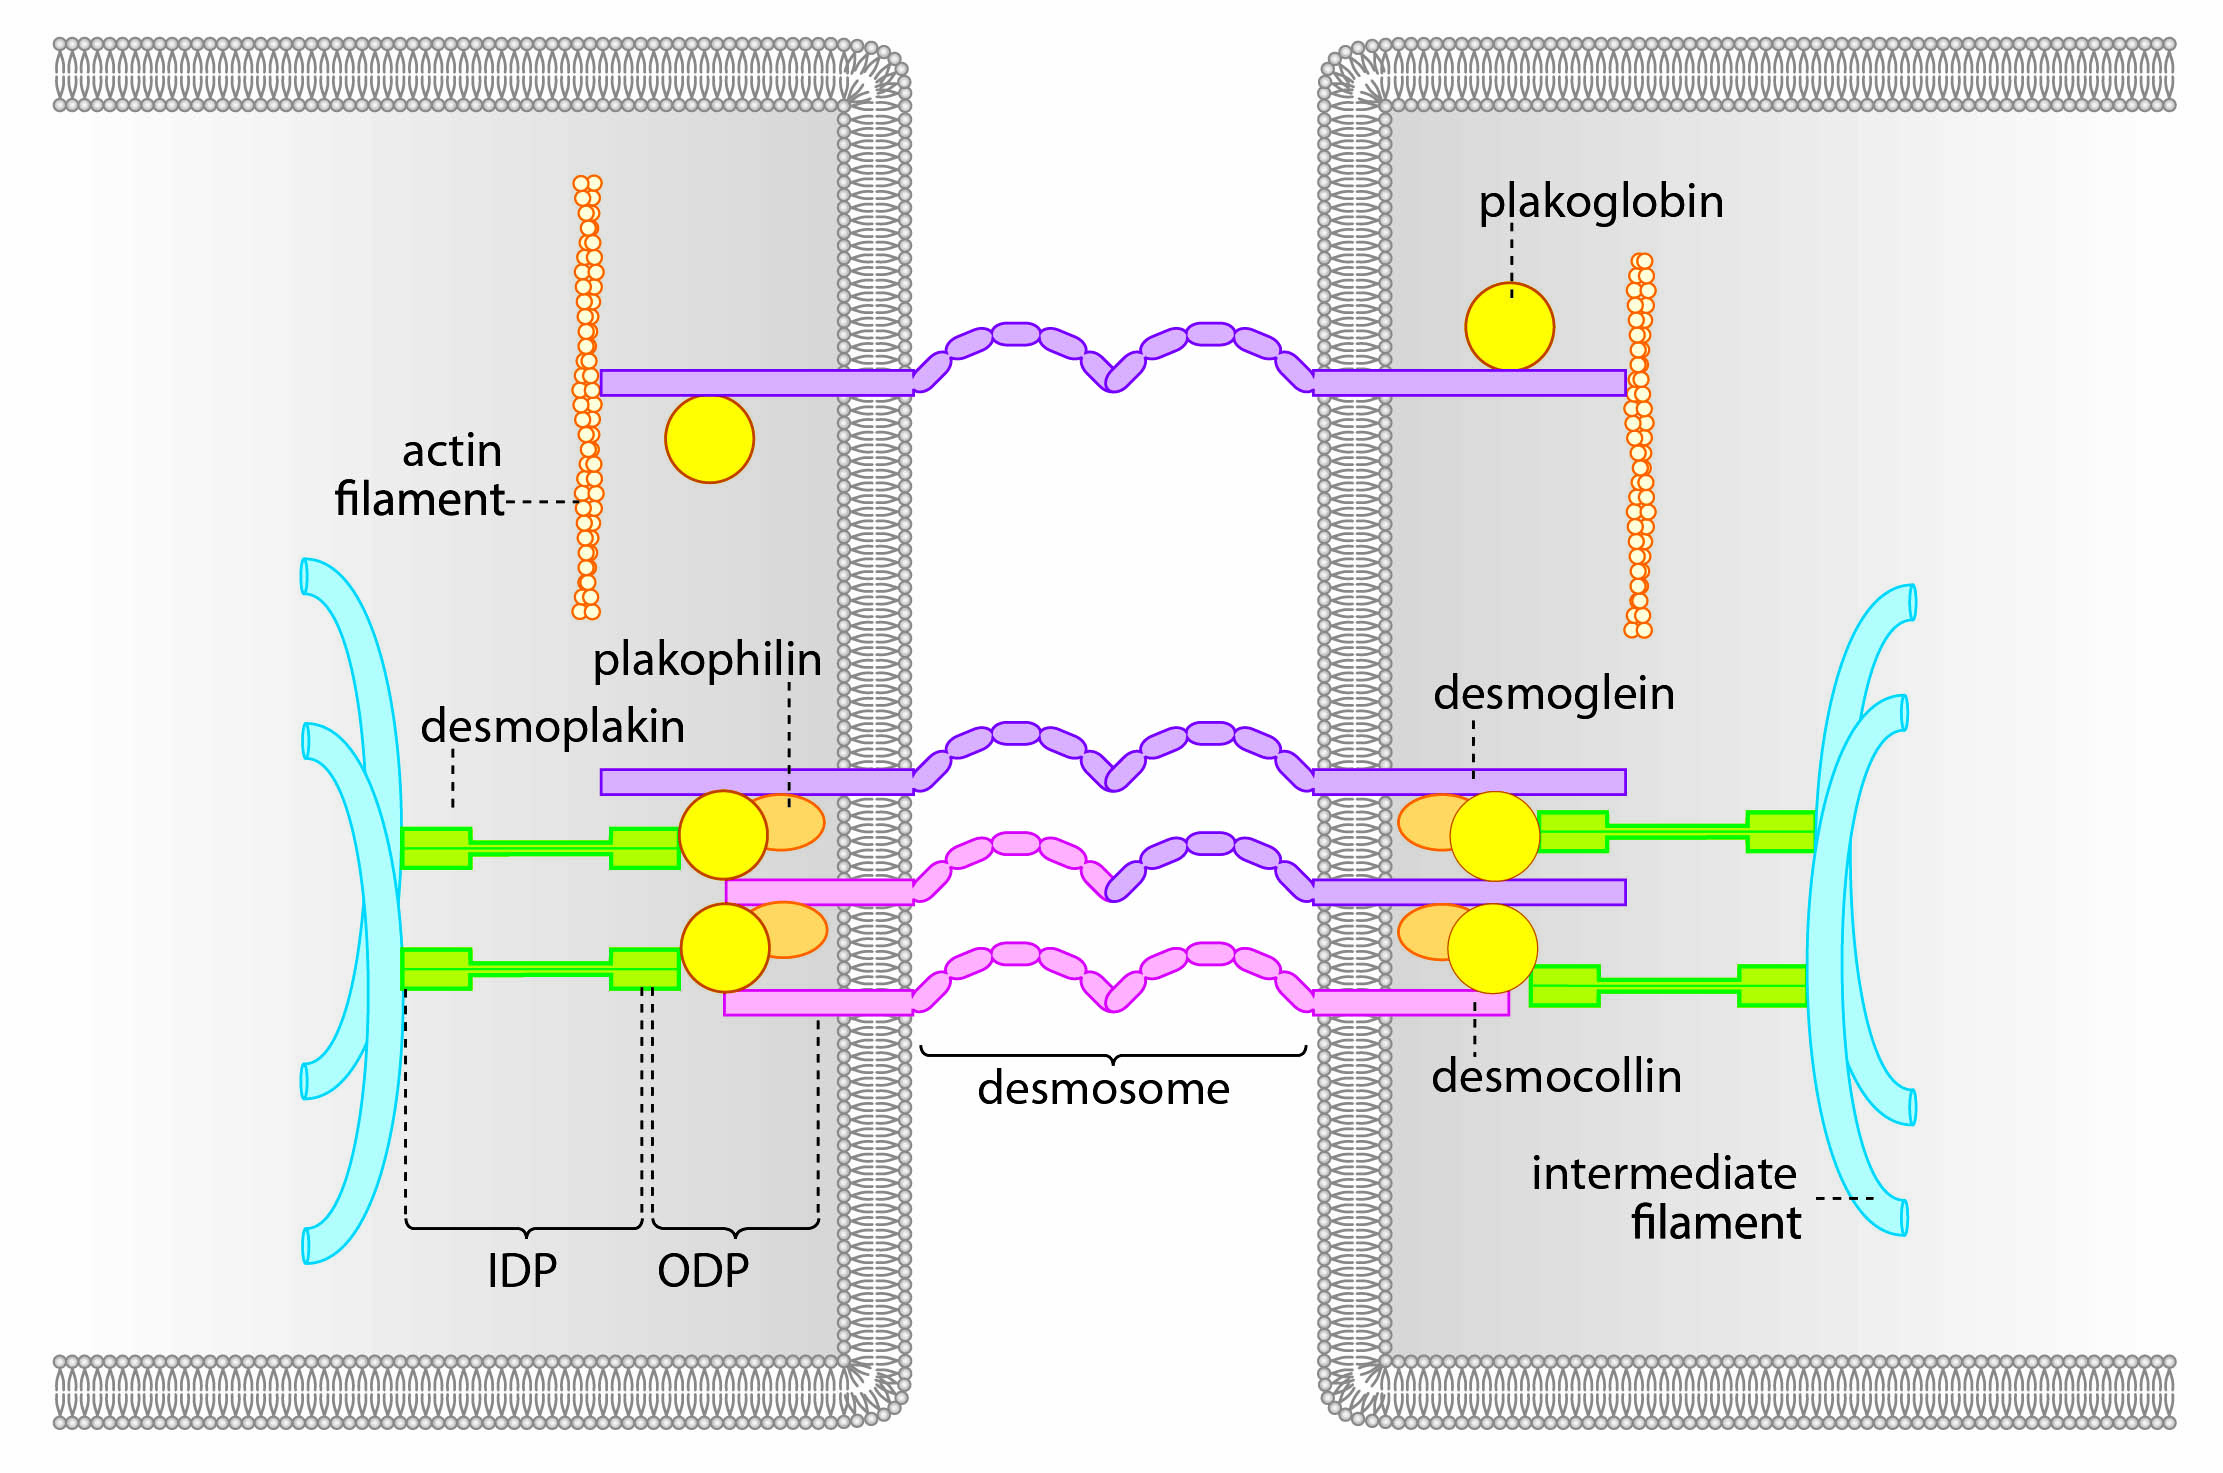 schematic of a desmosome